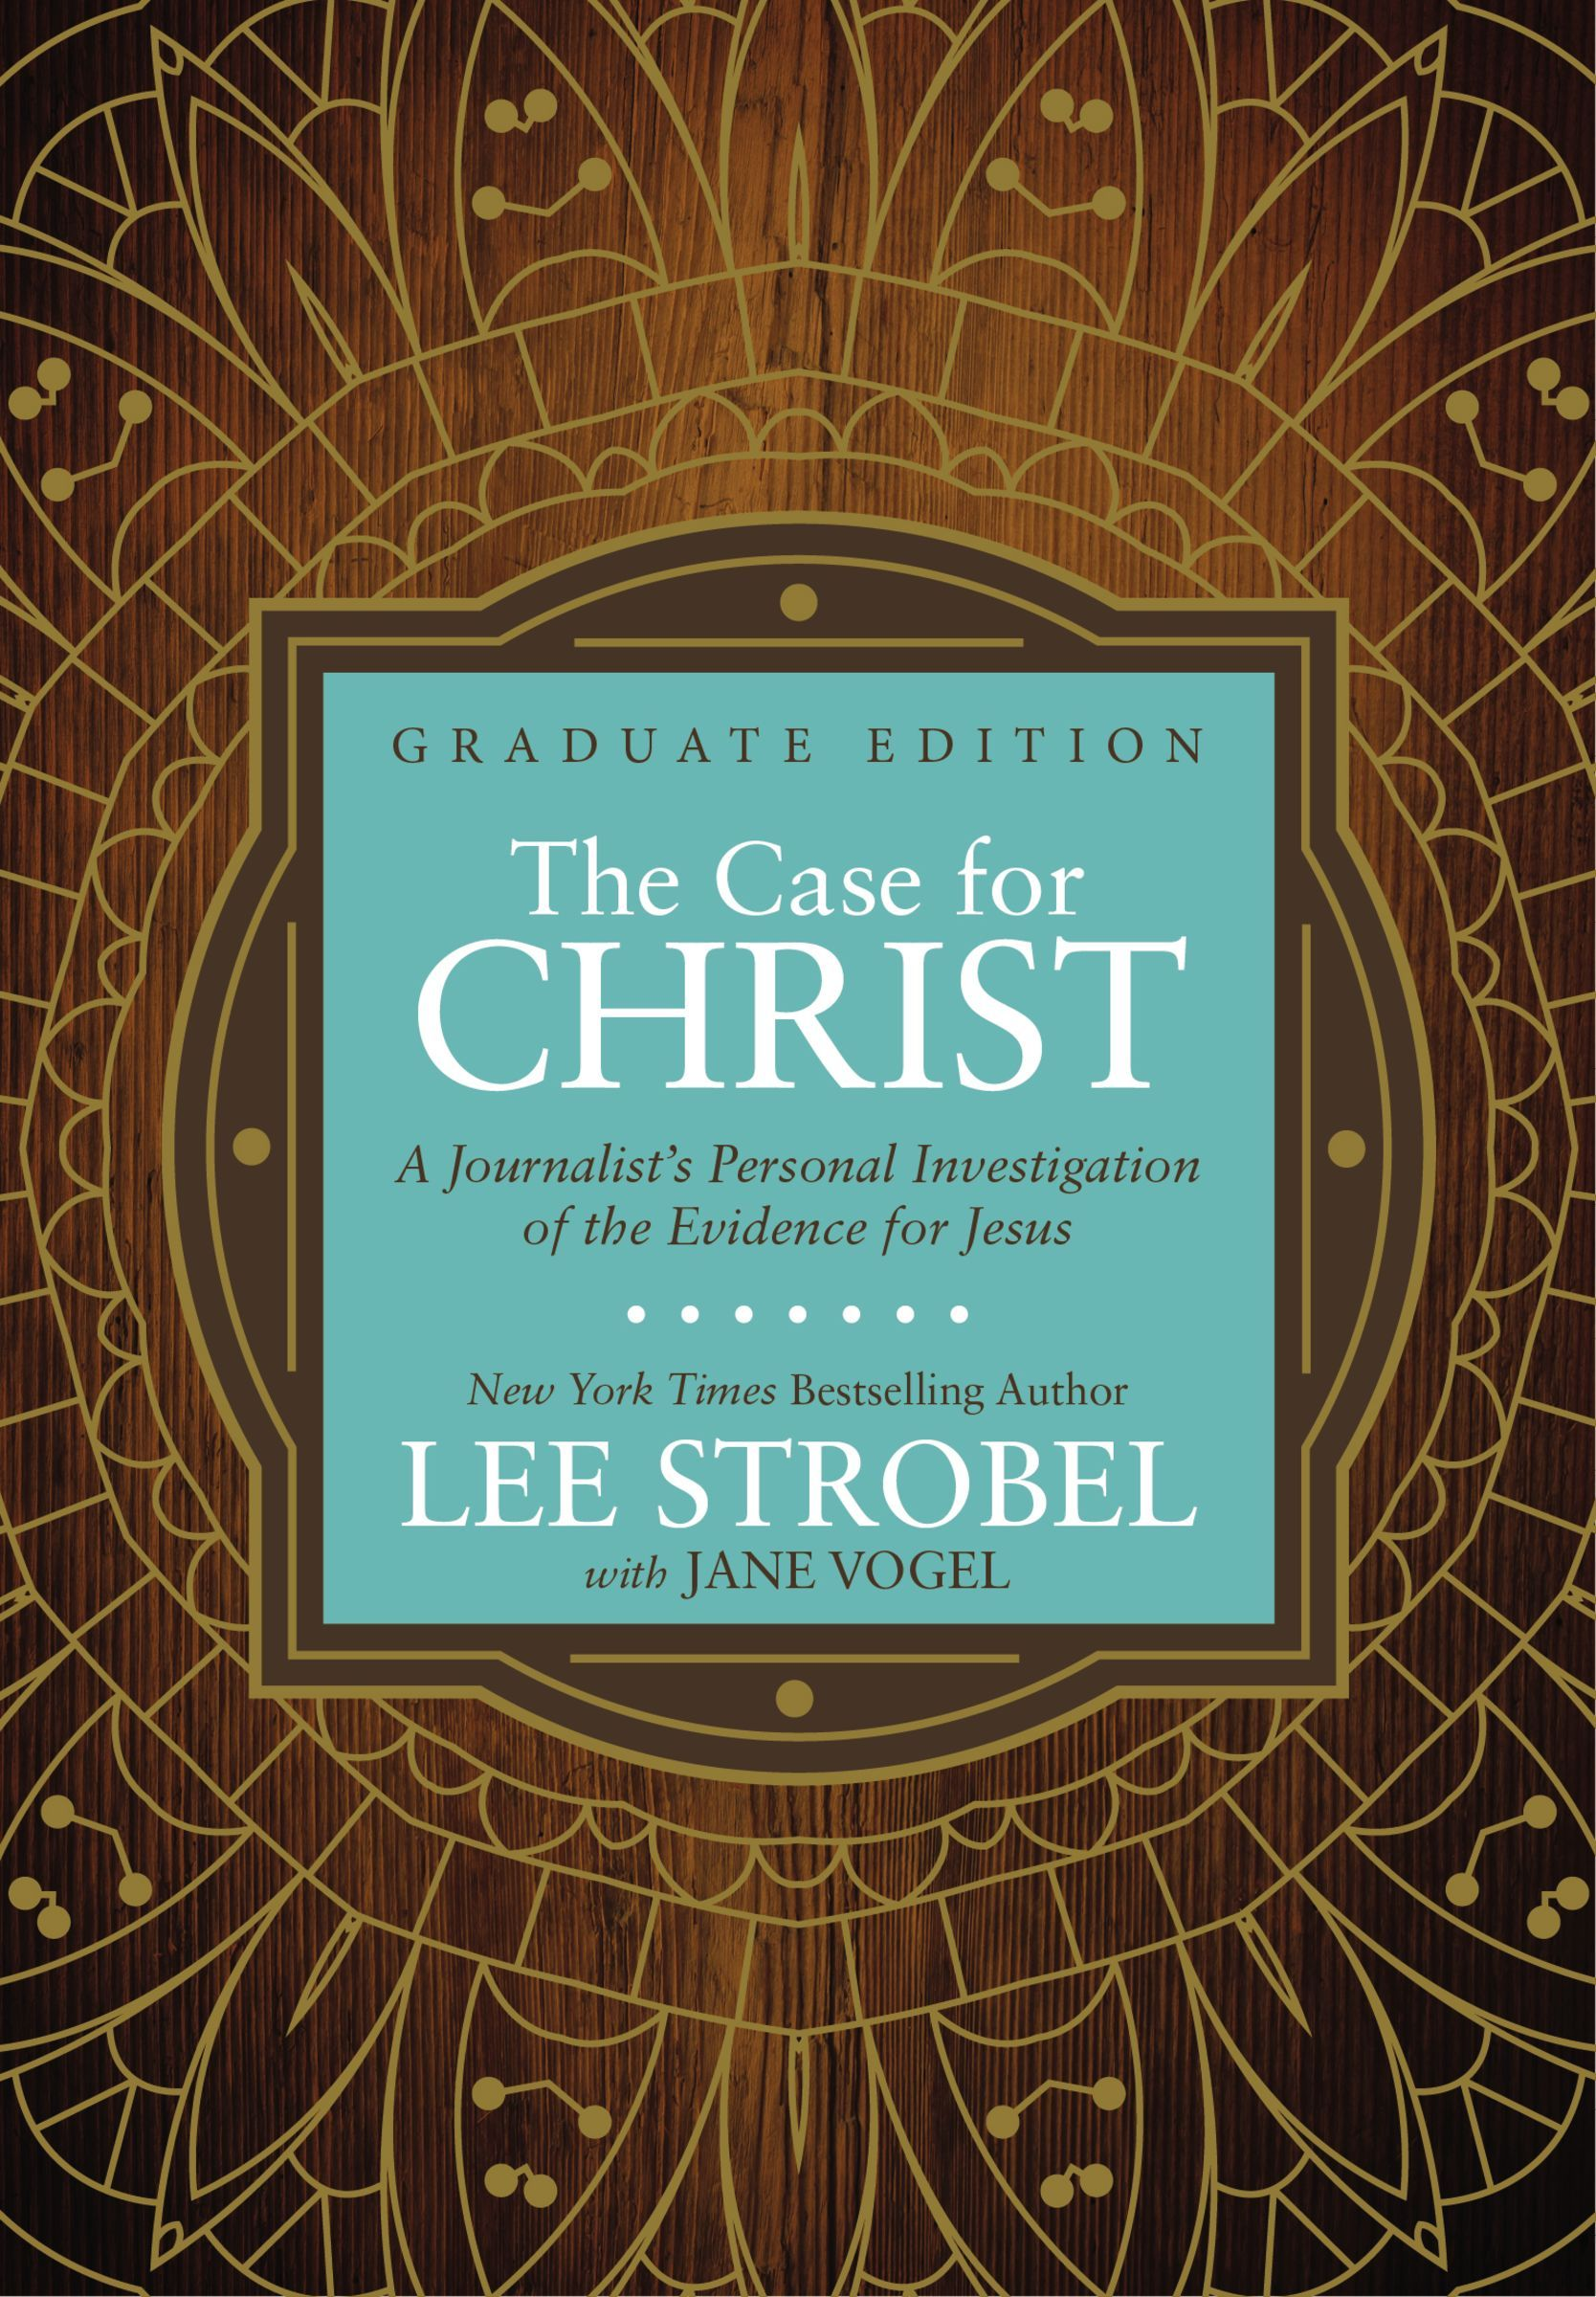 The Case for Christ Graduate Edition: A Journalist's Personal Investigation of the Evidence for Jesus